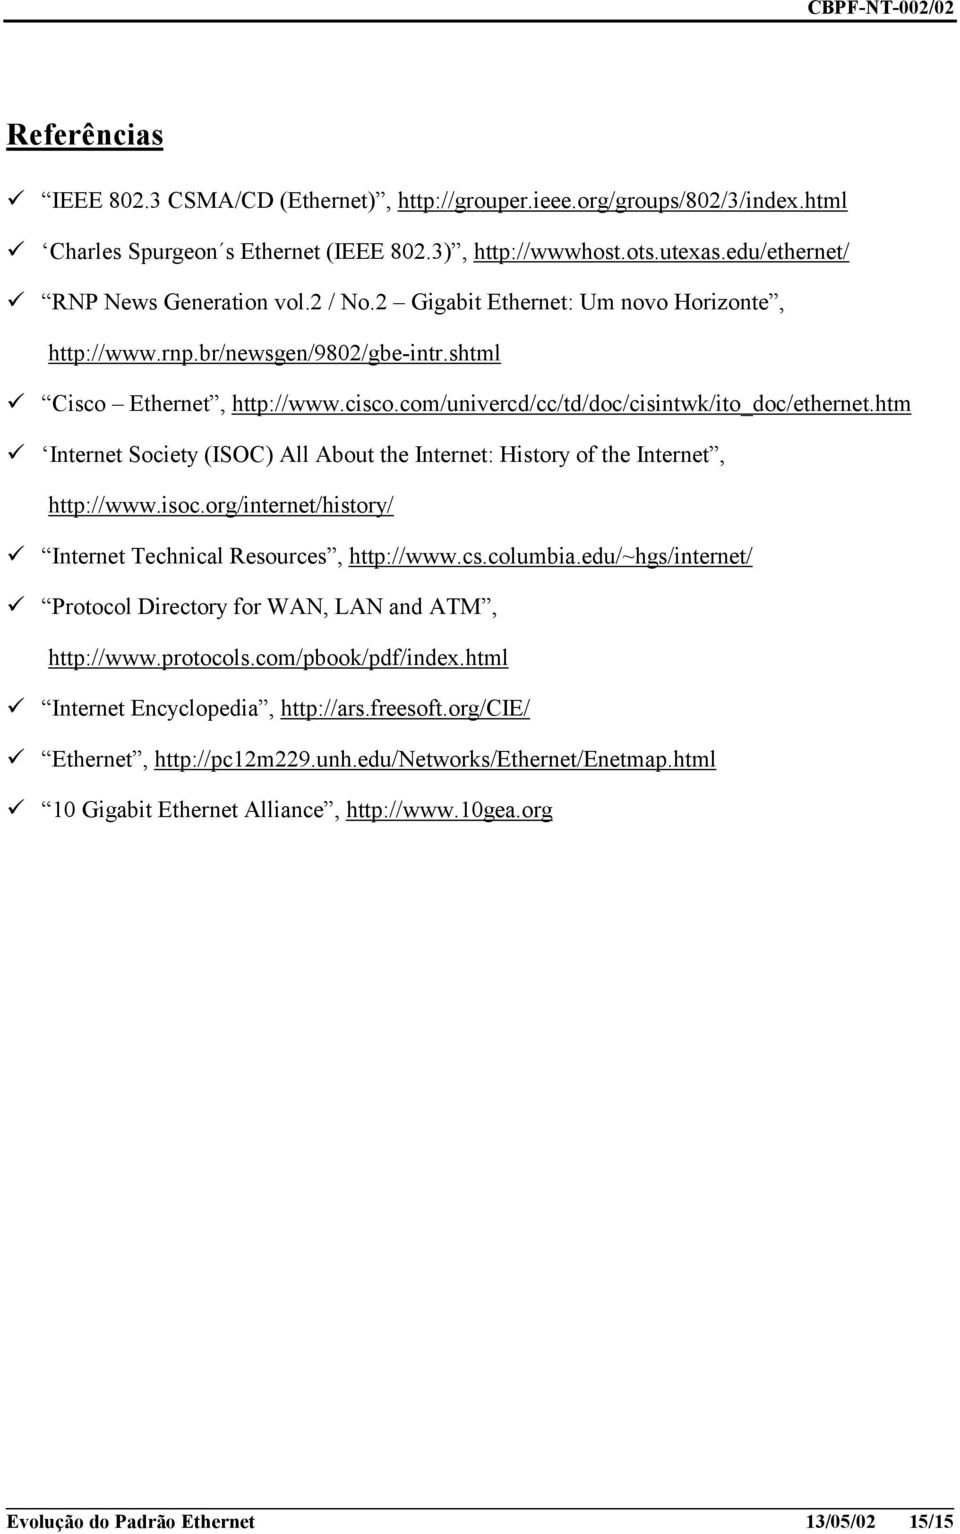 isoc.org/internet/history/! Internet Technical Resources, http://www.cs.columbia.edu/~hgs/internet/! Protocol Directory for WAN, LAN and ATM, http://www.protocols.com/pbook/pdf/index.html!